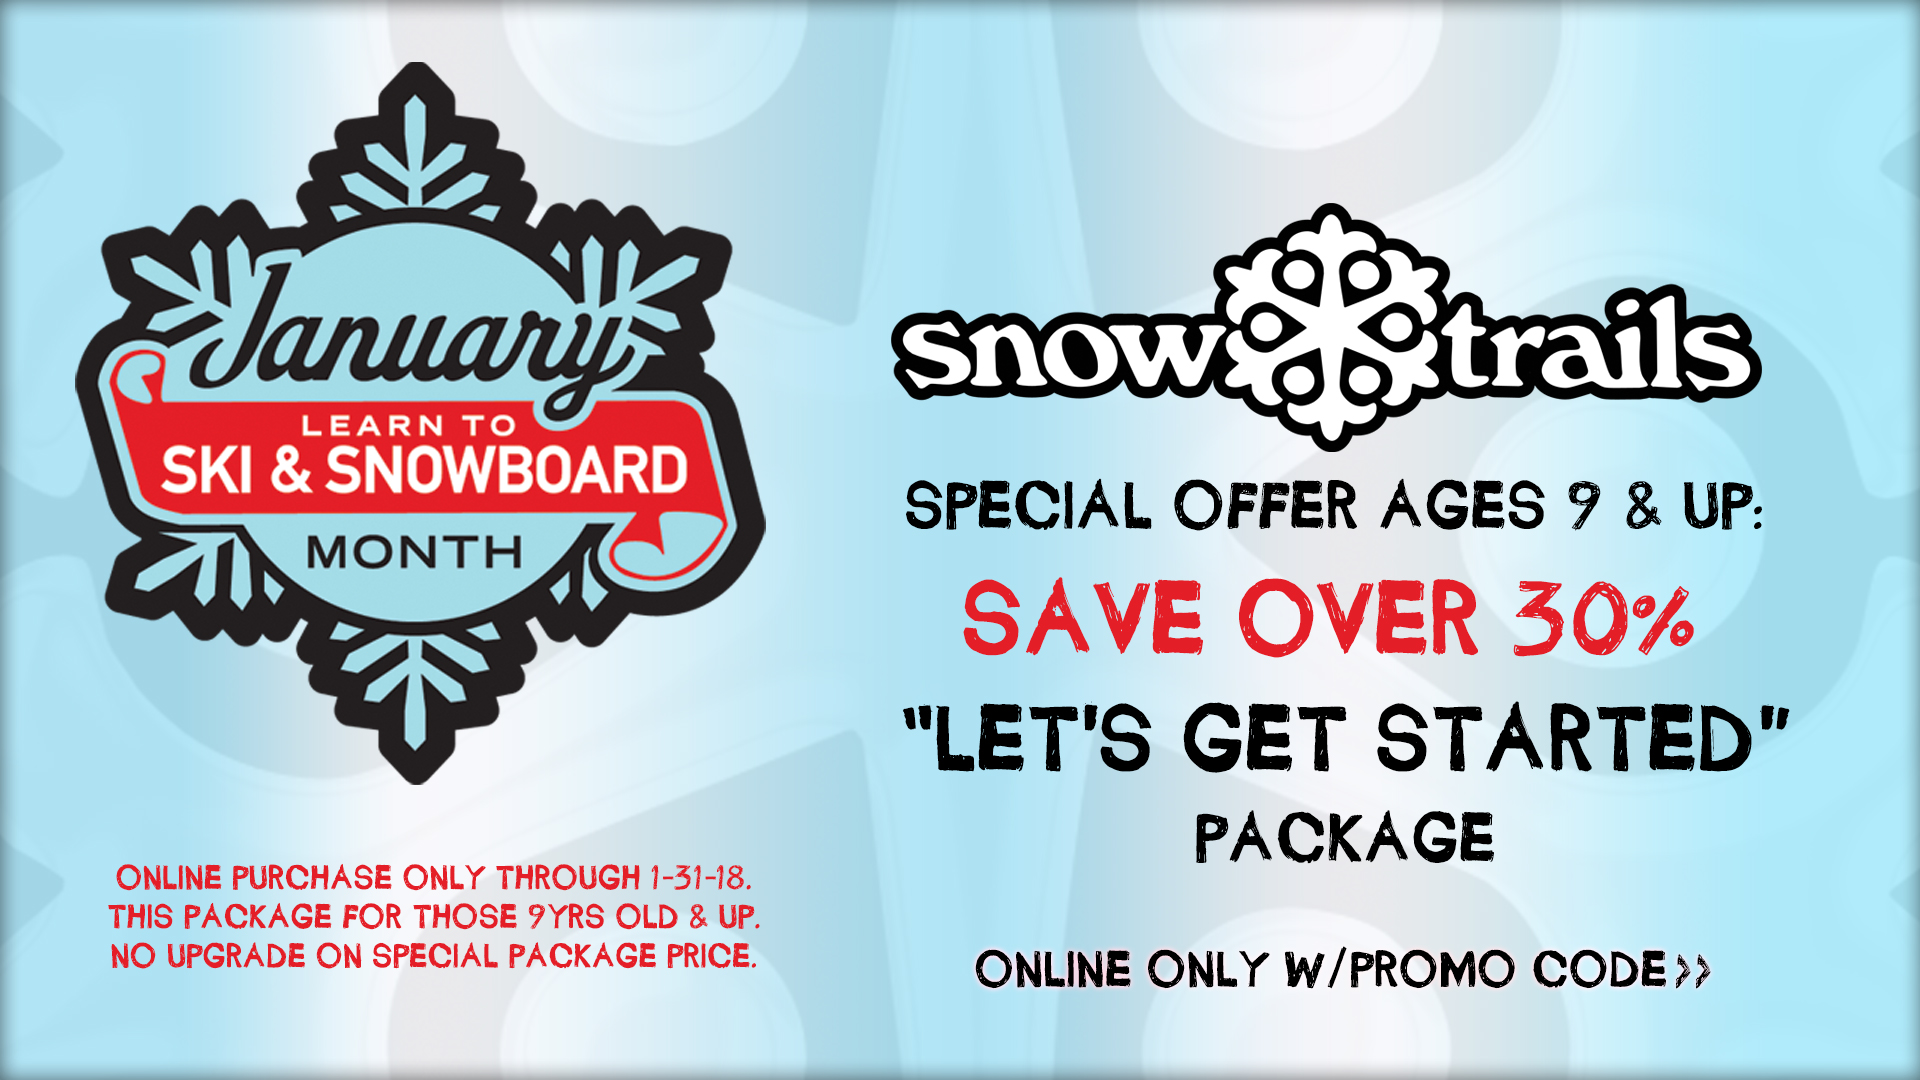 Learn to Ski and Snowboard Month Special Offer at Snow Trails in Mansfield, Ohio